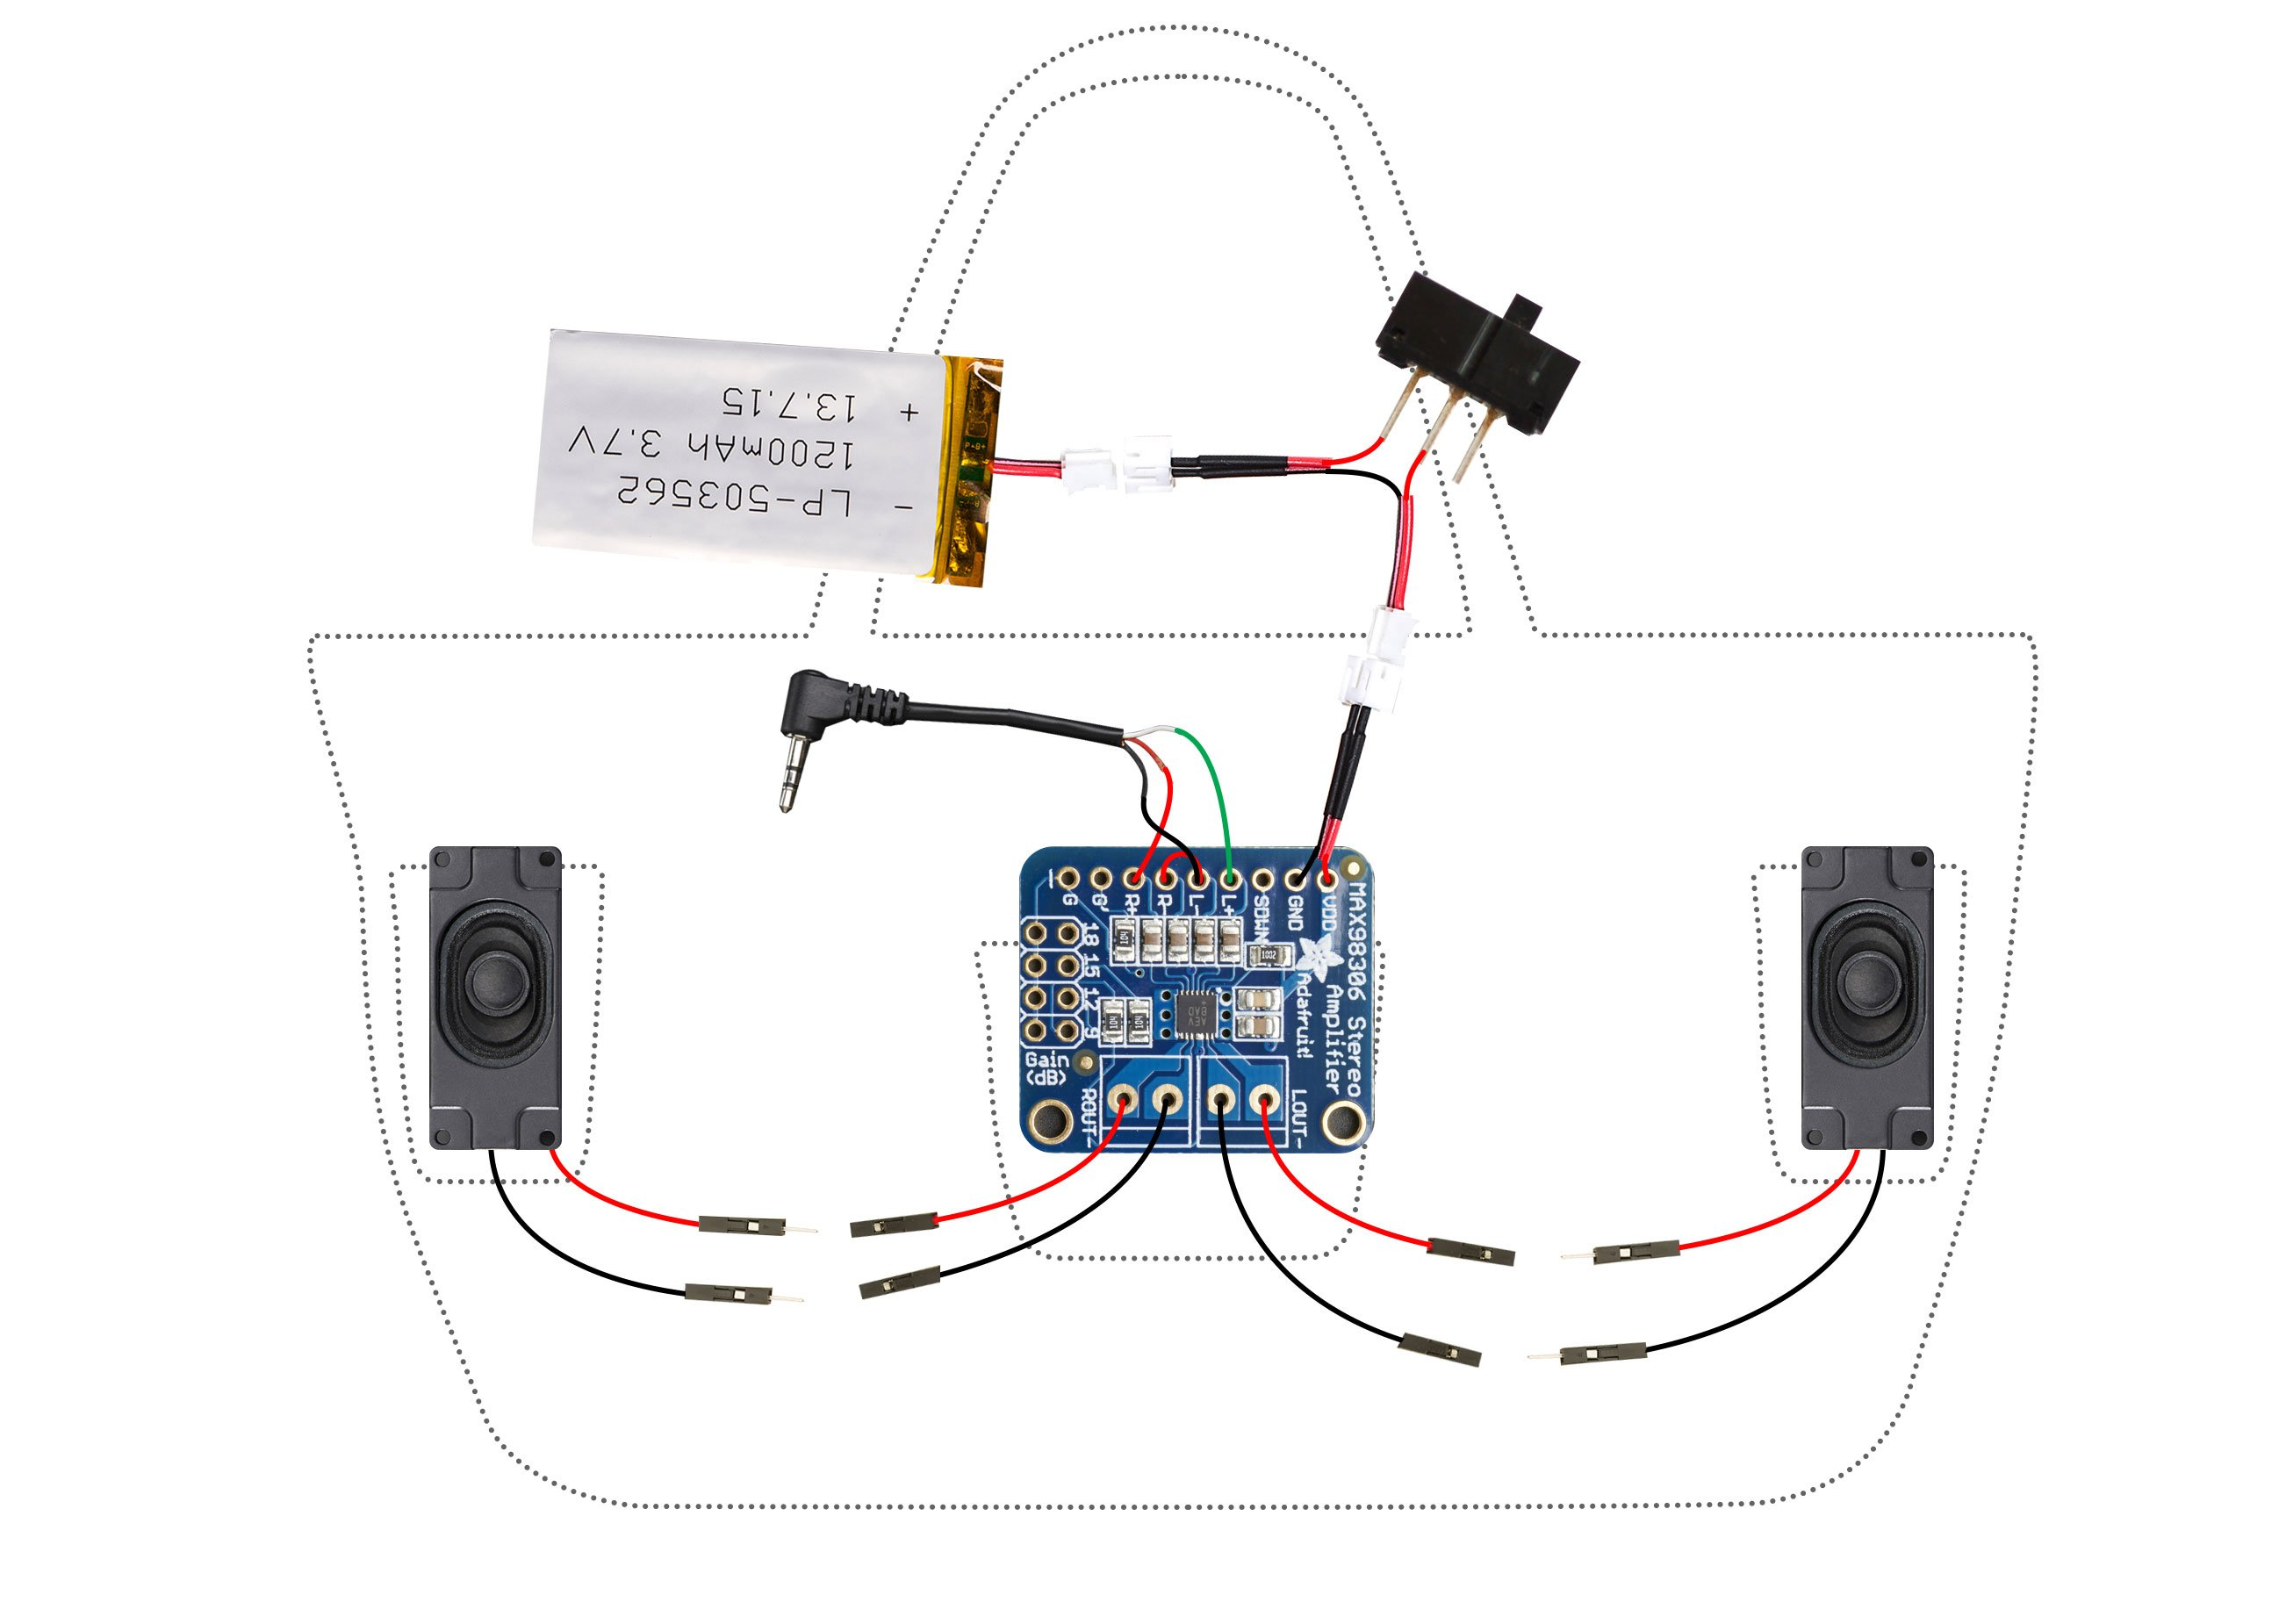 circuit diagram boombox beach bag with audio amp and speakers sub speaker wiring beach bag wiring